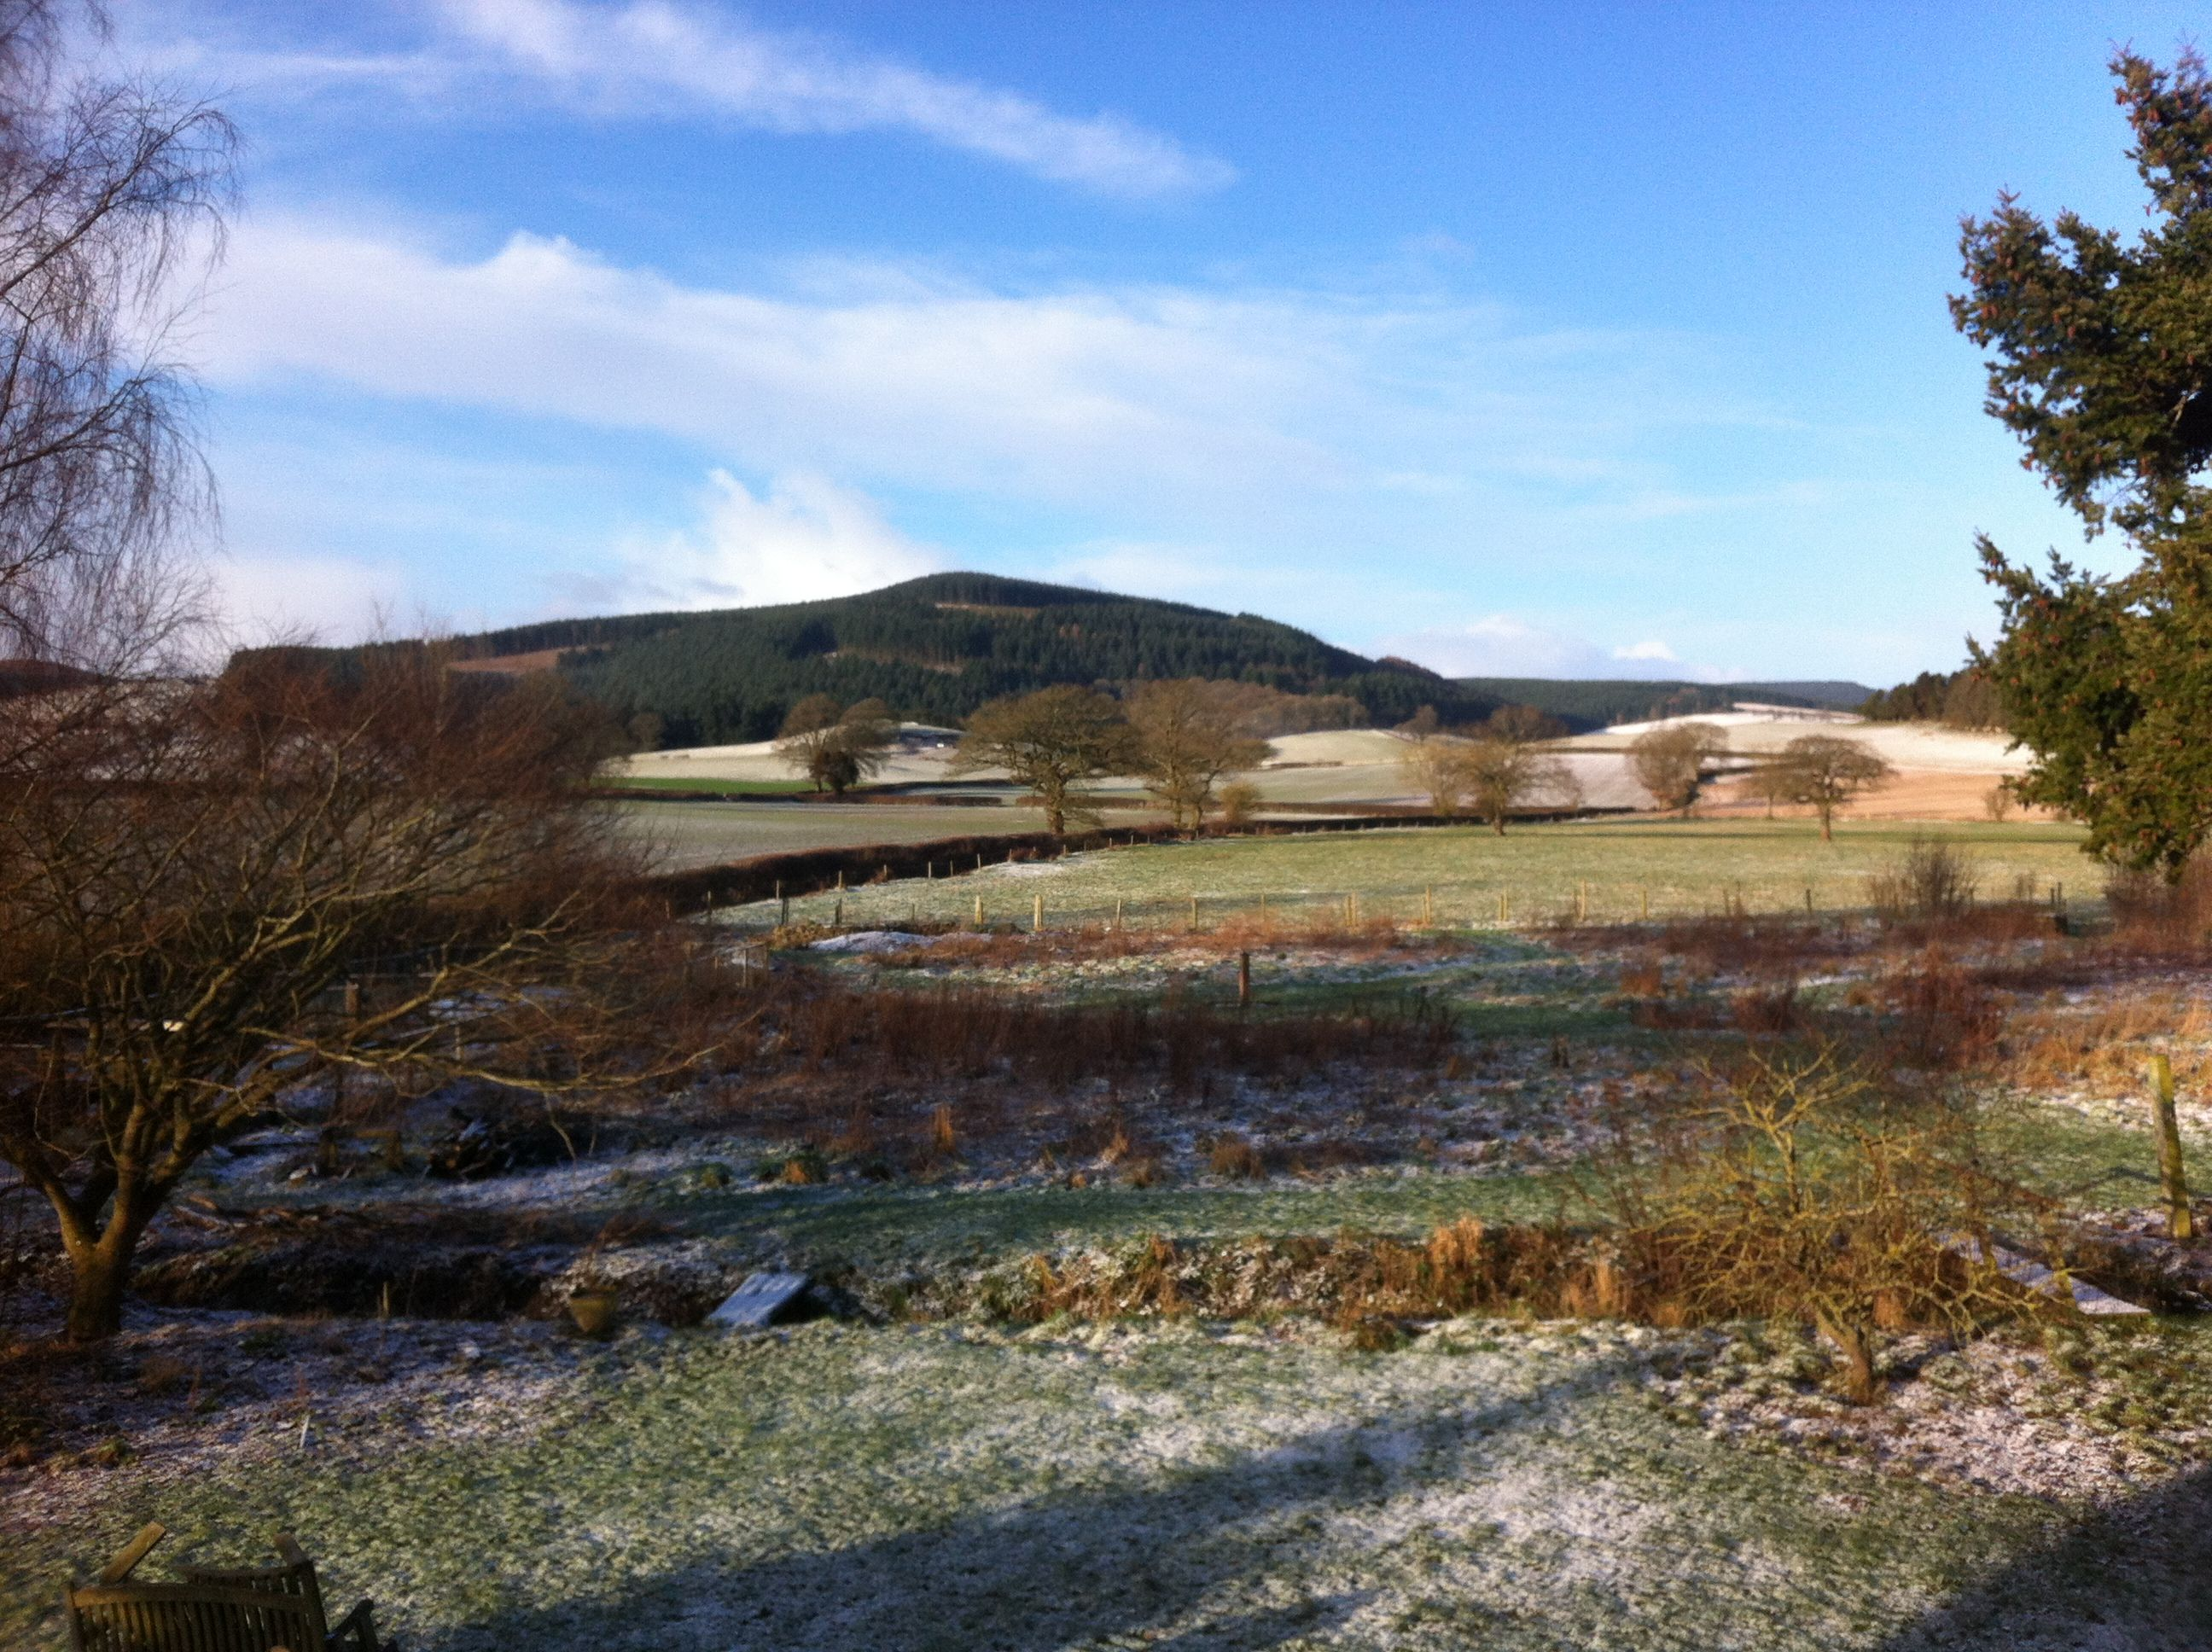 February 2013 - a mix of blizzards & blue today